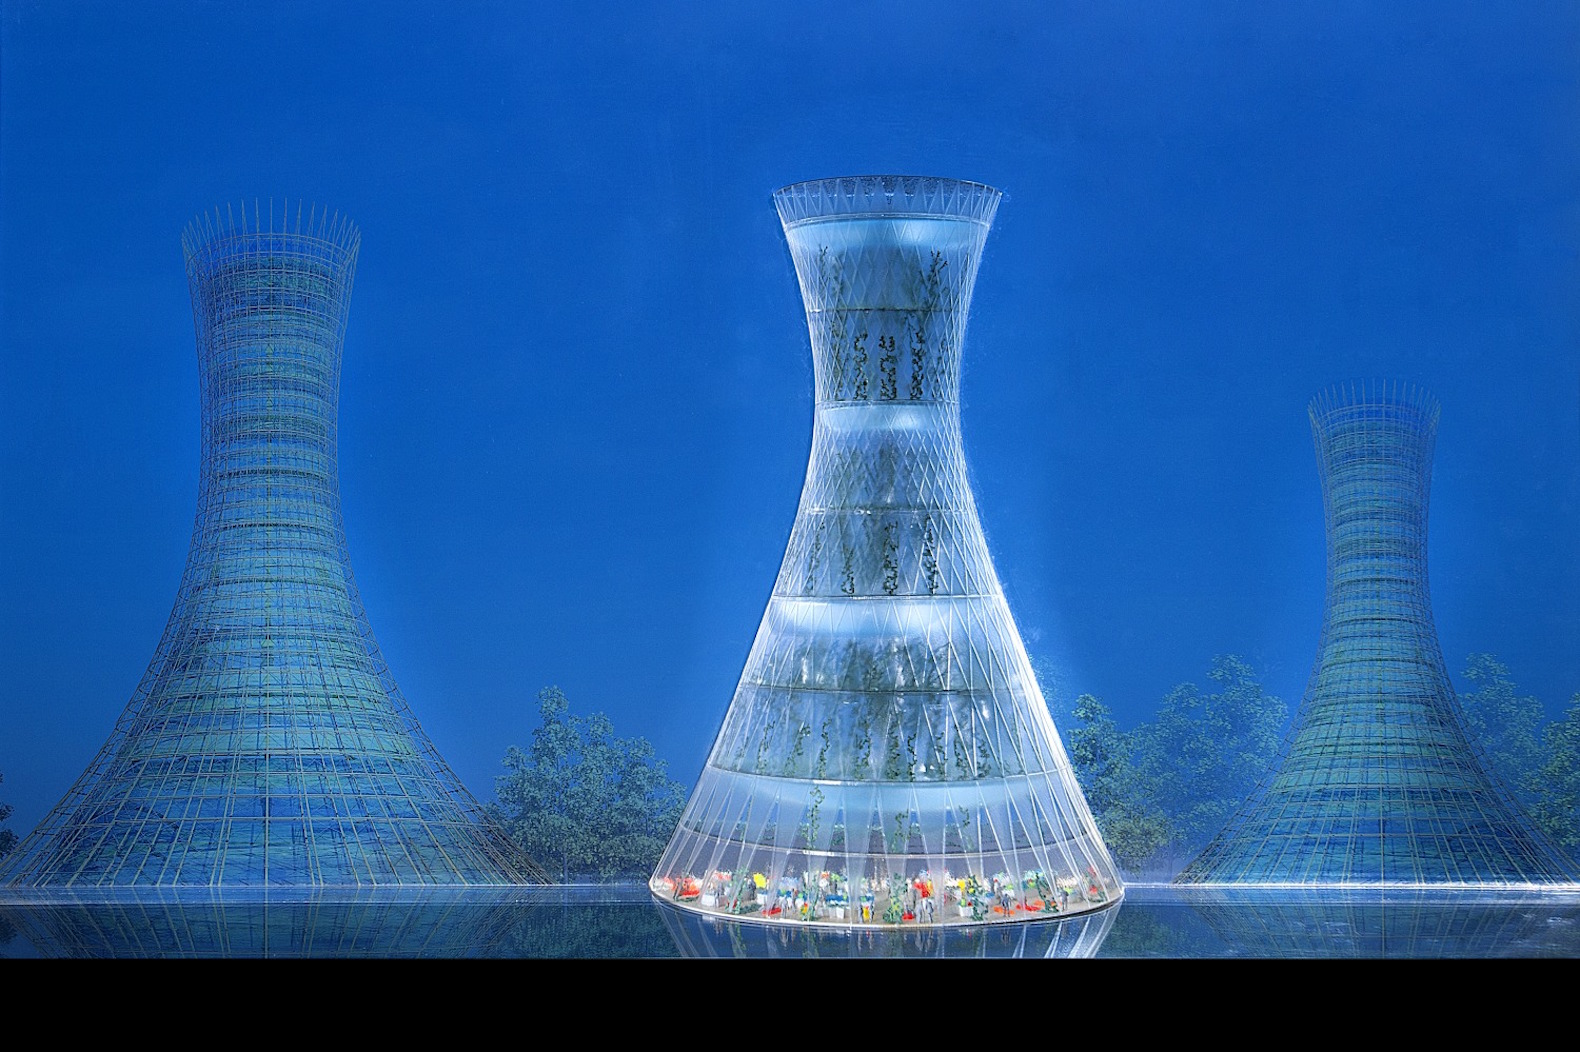 Wind-powered vertical Skyfarms are the future of sustainable agriculture